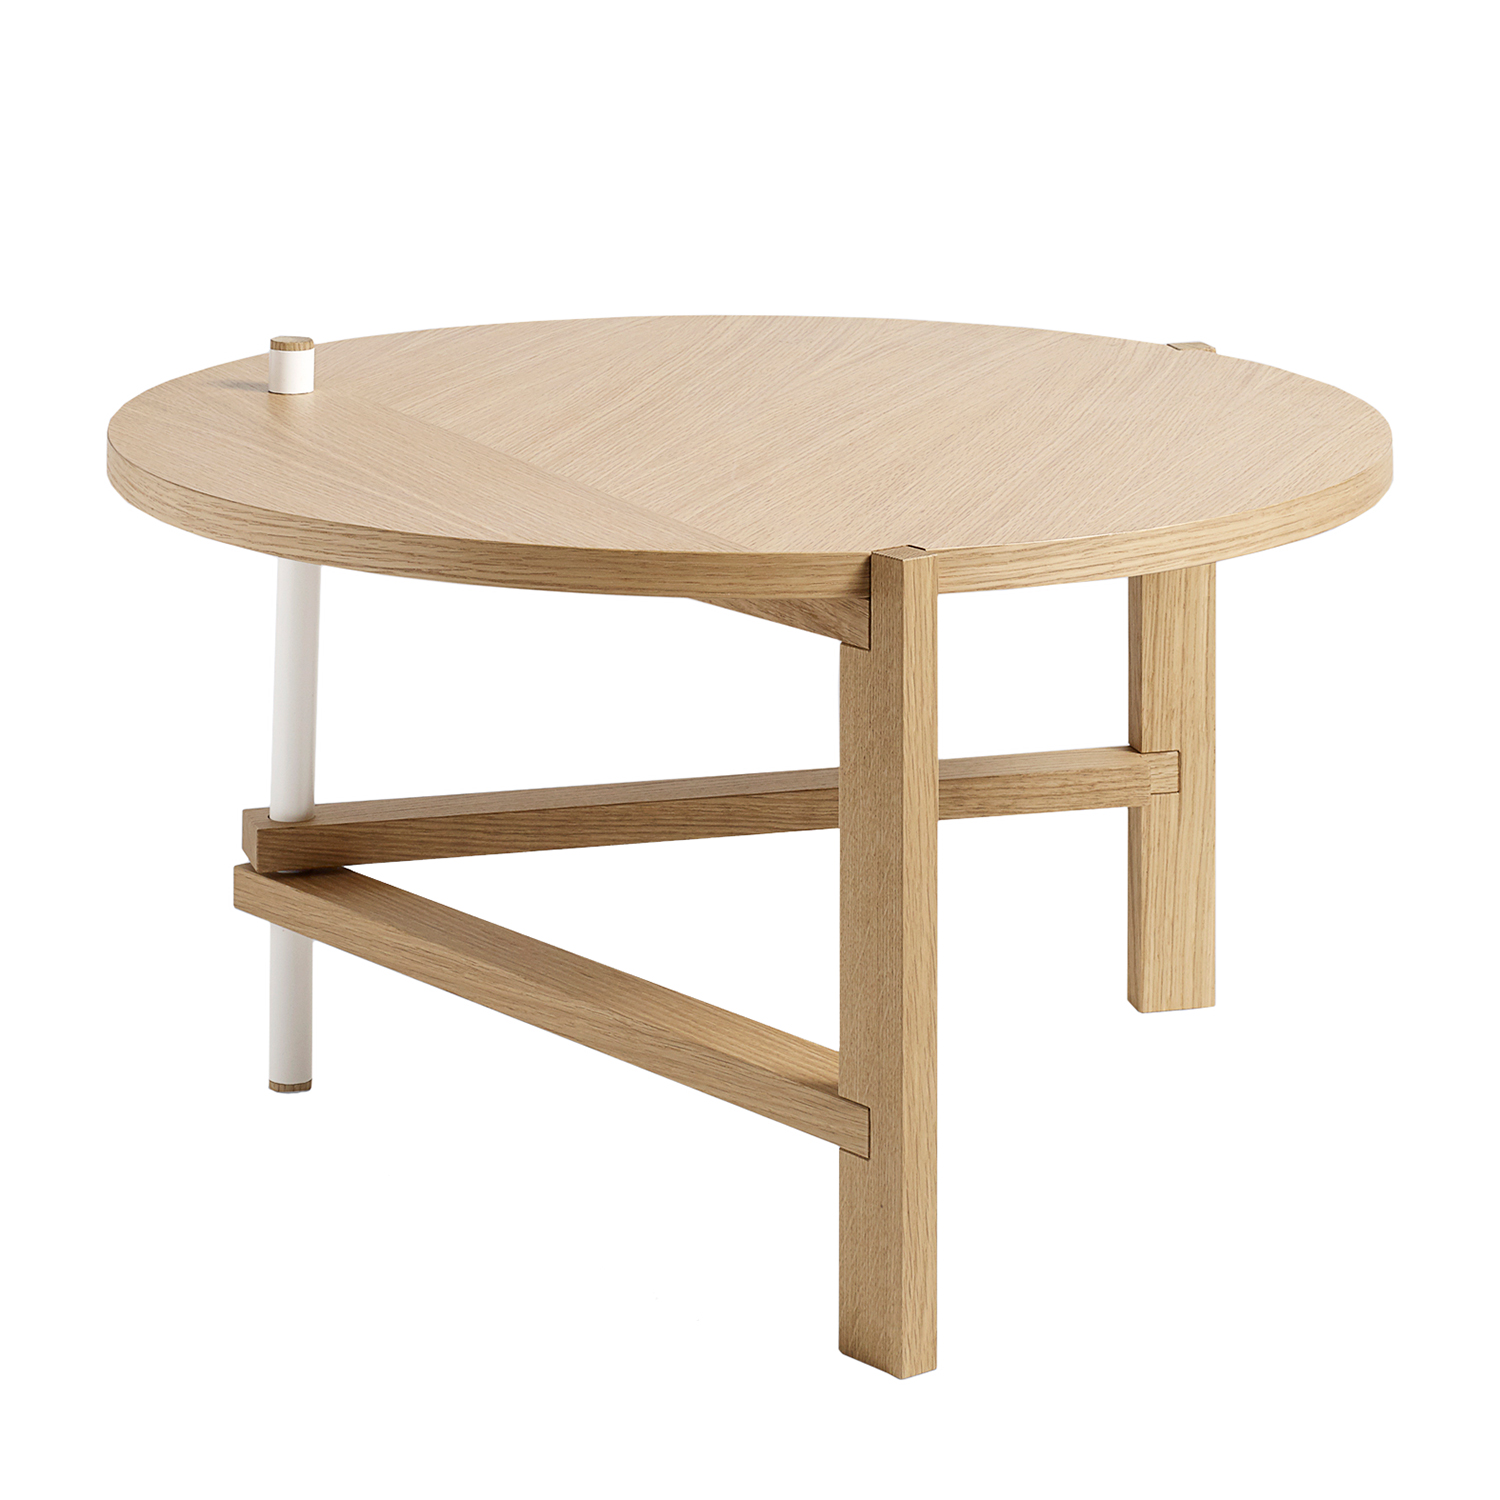 A side table Ø70, ek/vit